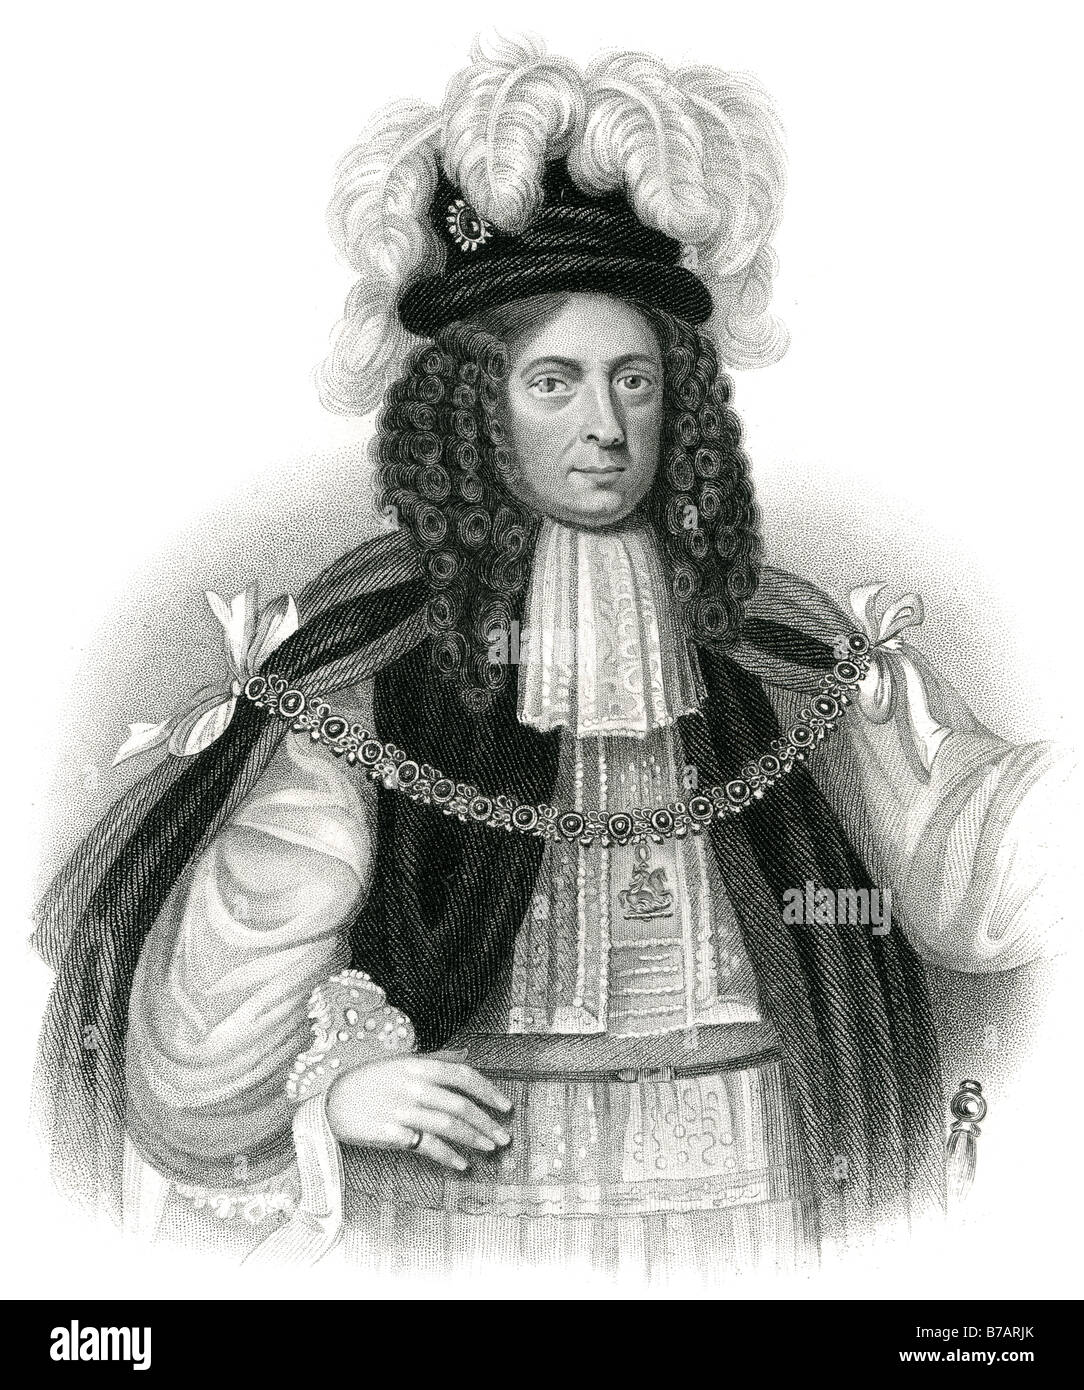 James Butler, 1st Duke of Ormonde (October 19, 1610 – July 21, 1688), was an Anglo-Irish statesman and soldier. - Stock Image